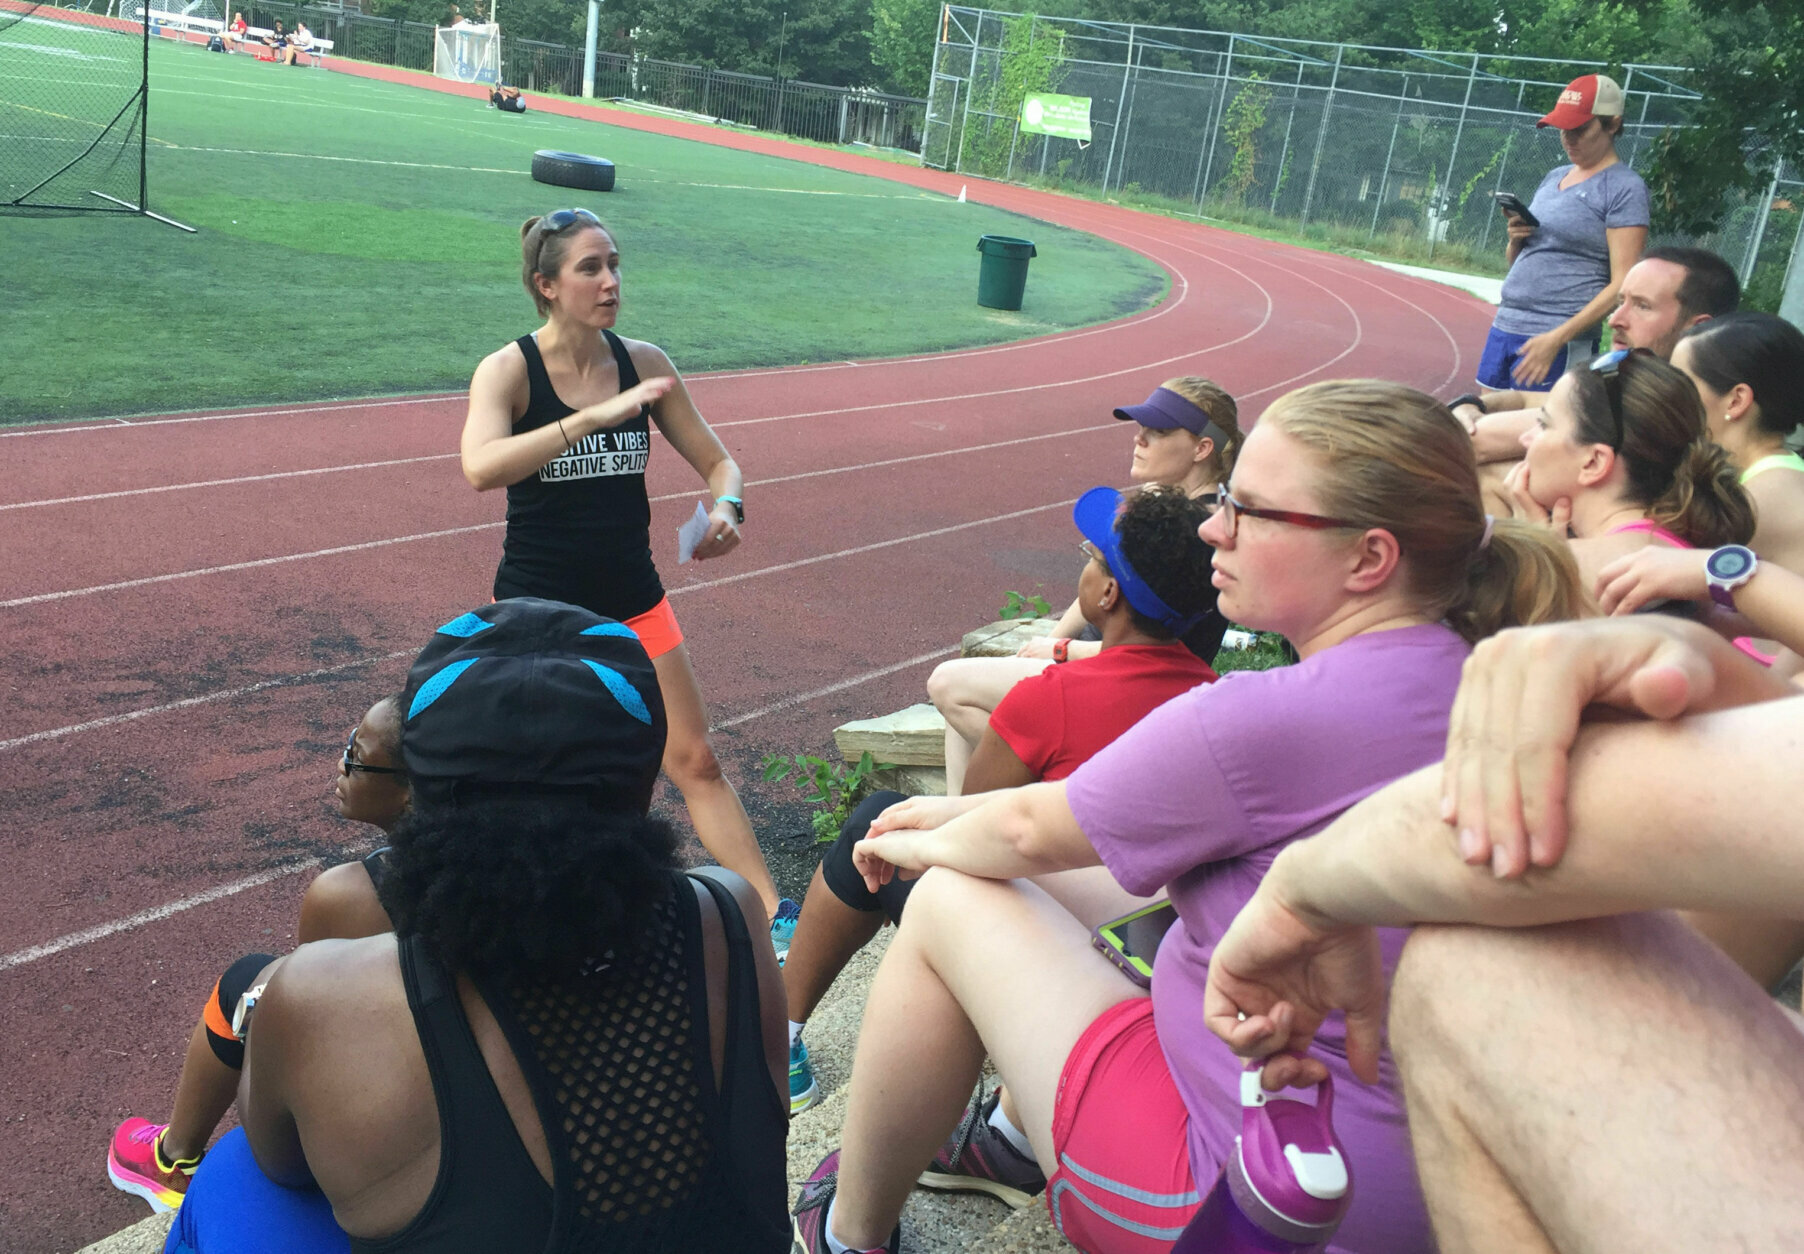 """<p>There are other ways to become a part of a community, too. You can join a running group, like one led by running coach Tammy Whyte, whose <a href=""""https://www.twtrainingwellness.com/"""" target=""""_blank"""" rel=""""noopener"""">TW Training and Wellness</a> aims to help new runners complete their first 5K or 10-miler.</p> <p>""""I&#8217;m not targeting the really fast runners, they generally don&#8217;t need that accountability,"""" Whyte said. """"I'm helping someone who needs the coaching support and the community to run their first long race, or to be consistent with their training. The accountability and the community is a big reason they sign up.""""</p> <p>Whyte also runs on her own time with <a href=""""https://www.districtrunningcollective.com/"""" target=""""_blank"""" rel=""""noopener"""">District Running Collective</a>, a group that engages runners of all levels during runs throughout the week. DRC asks runners to introduce themselves to two new people each time they come out.</p> <p>""""With DRC, the community is so awesome, and I've met so many people. There&#8217;s a lot of diversity, which I like,"""" Whyte said.</p>"""